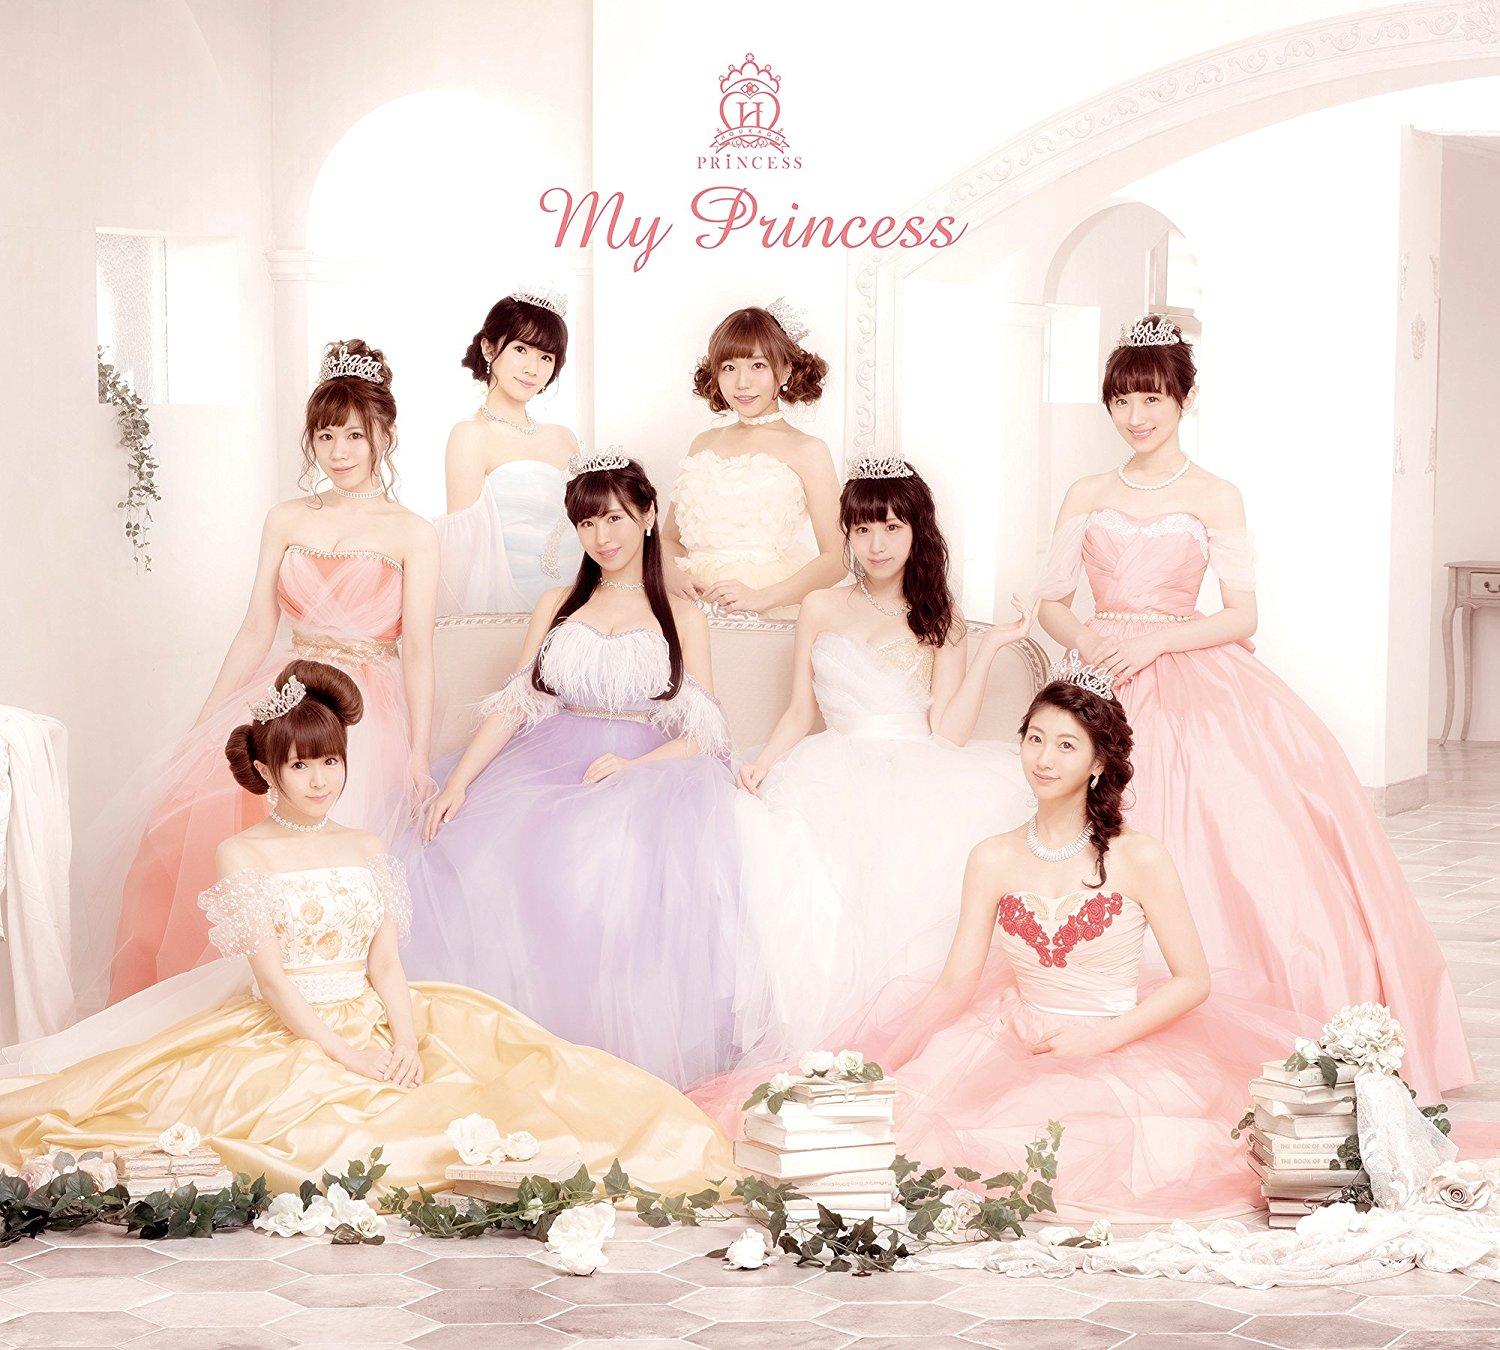 20170518.1644.03 Houkago Princess - My Princess cover.jpg